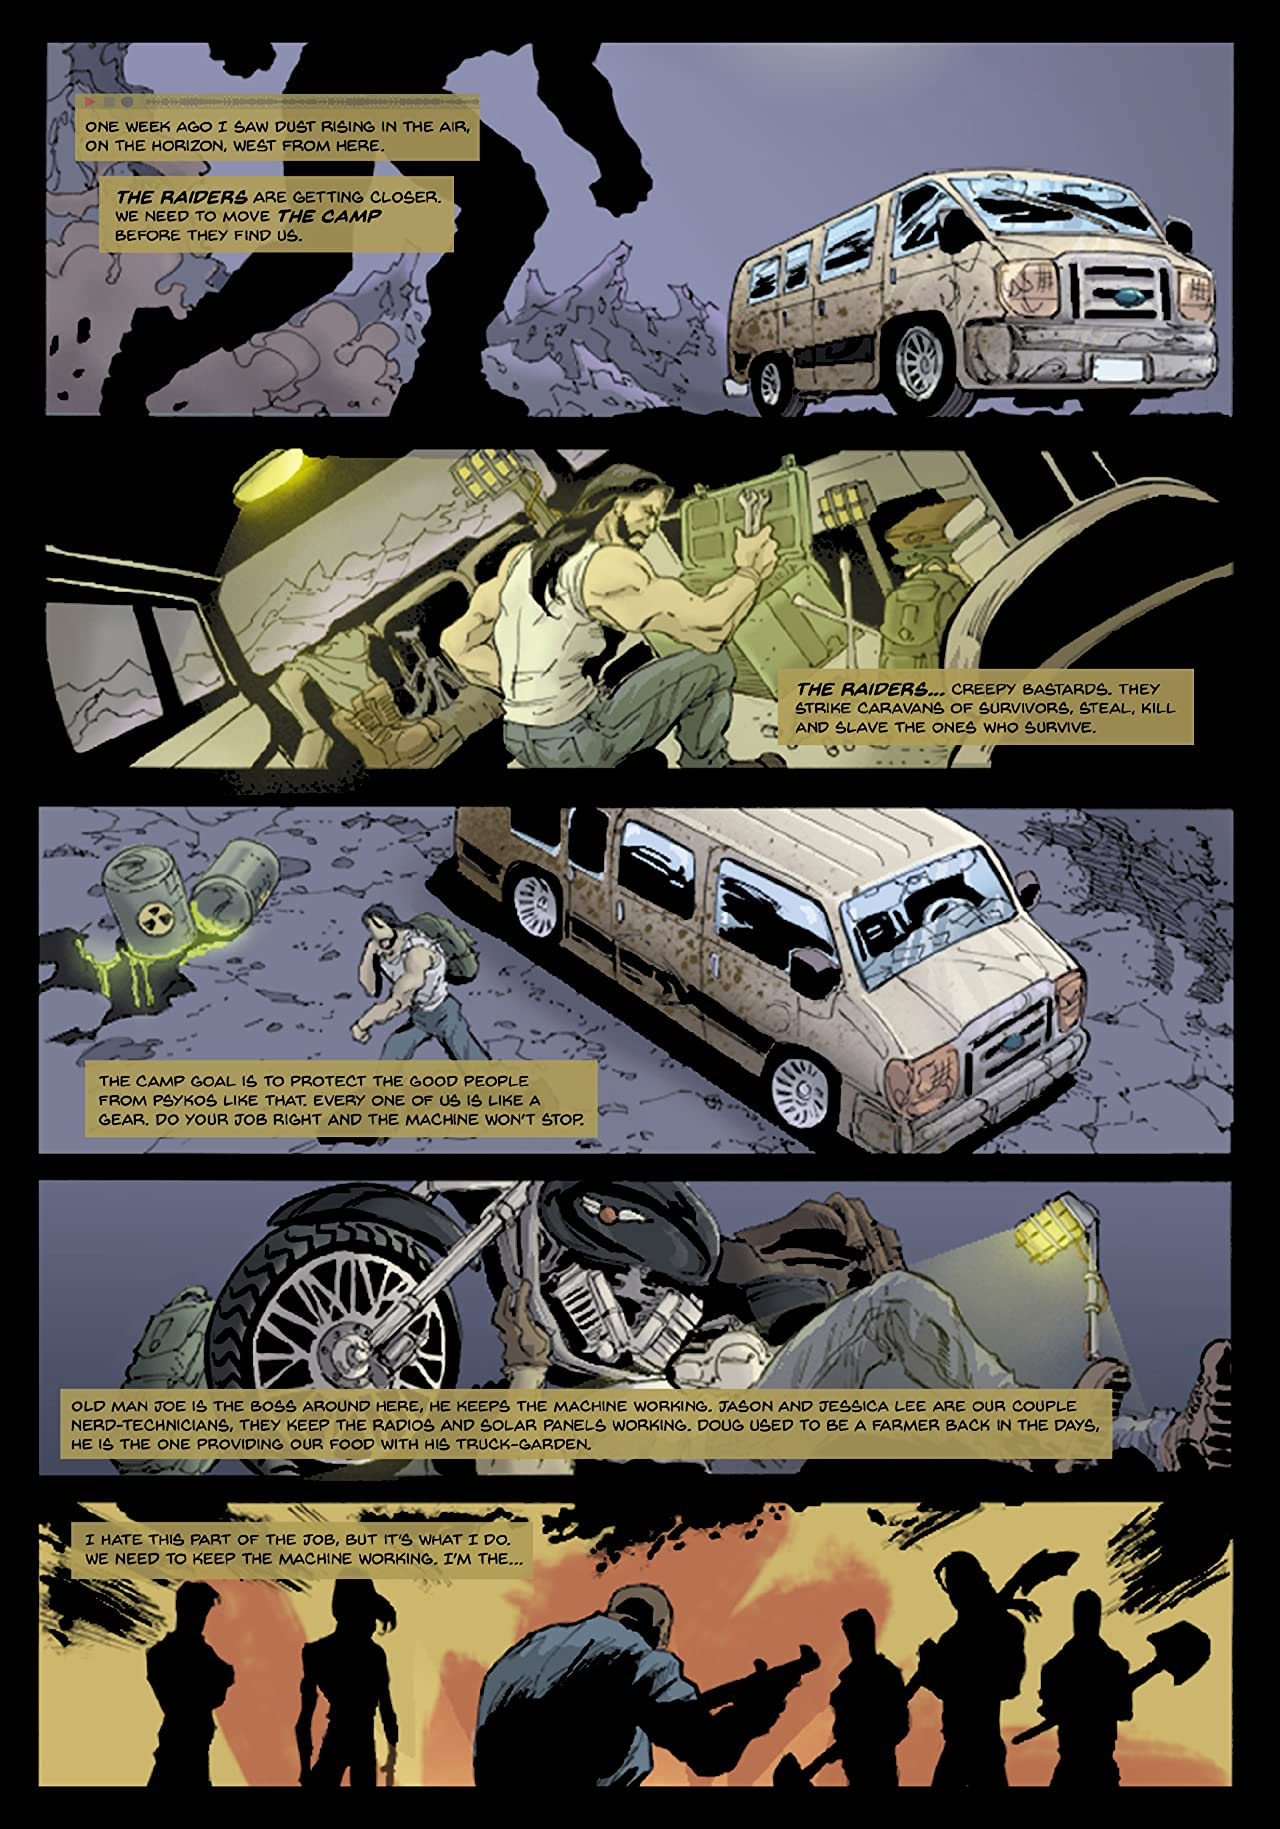 Buried: The Last Days of Mankind #1